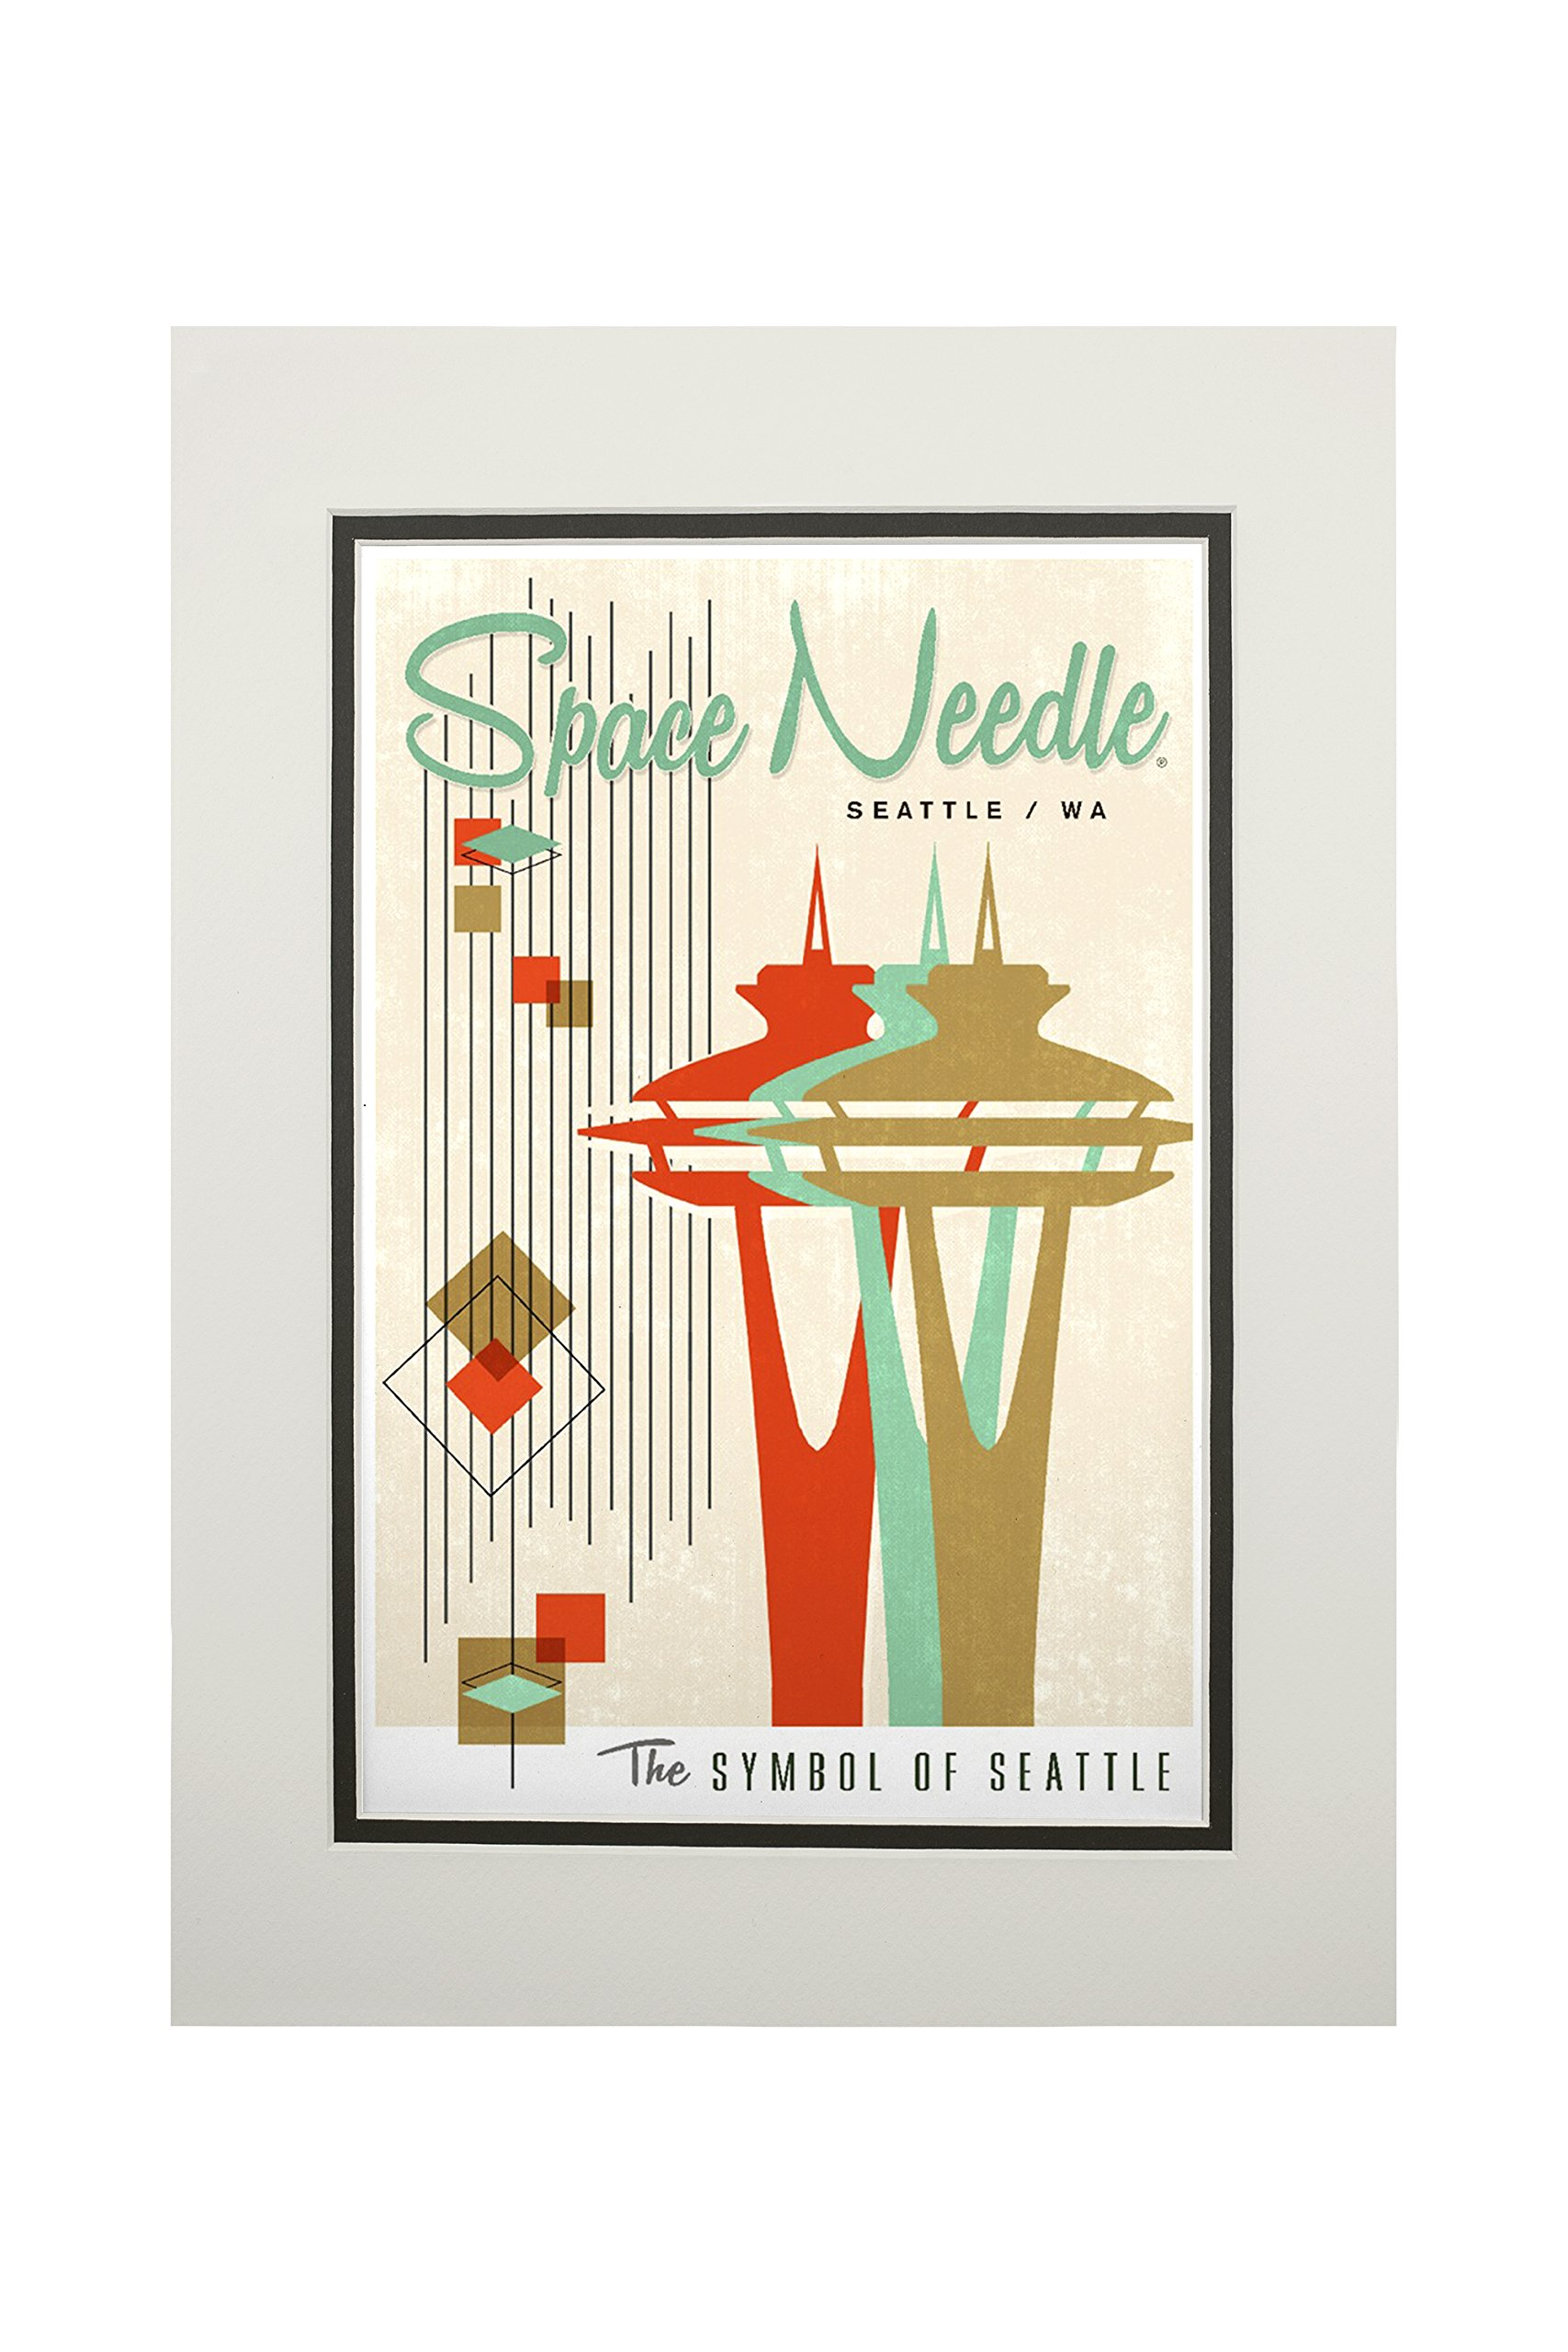 The Space Needle - Simple Block Color - Mid Century Modern Graphic Design (11x14 Double-Matted Art Print, Wall Decor Ready to Frame)